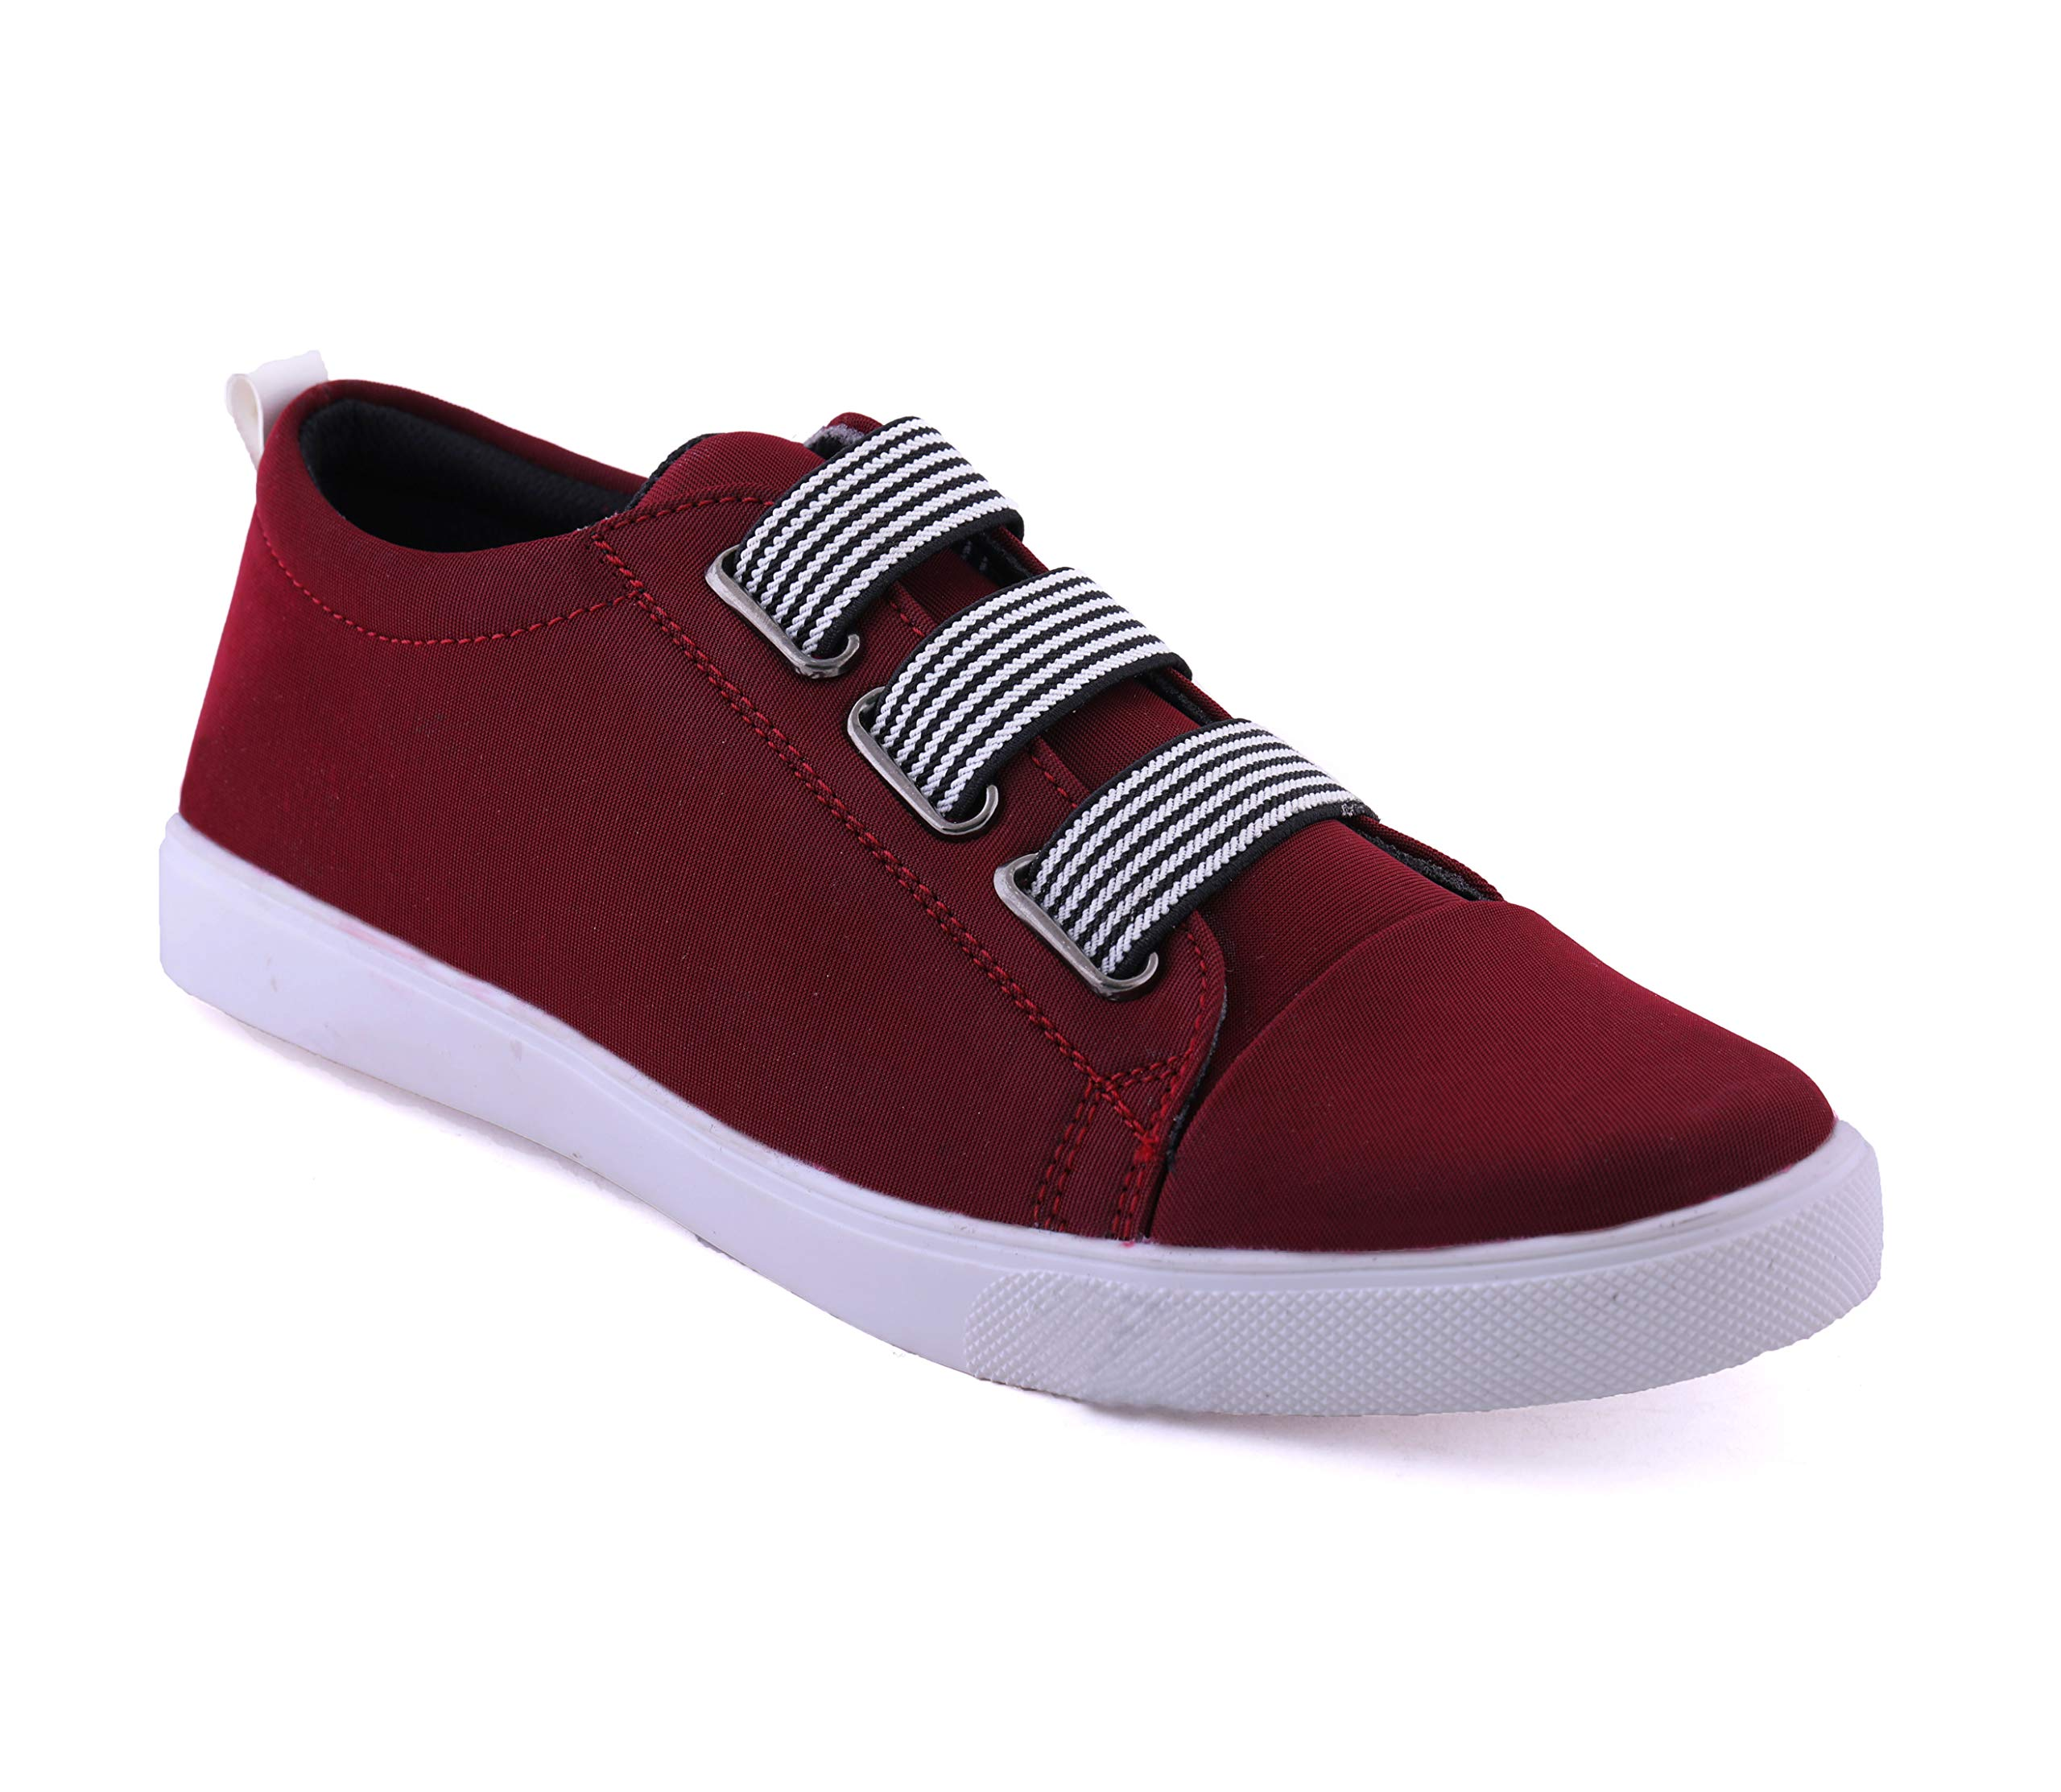 BUCADIA Men Fashion Outdoor Canvas Casual Light Weight Slip-On Evening Walk Running Shoe product image